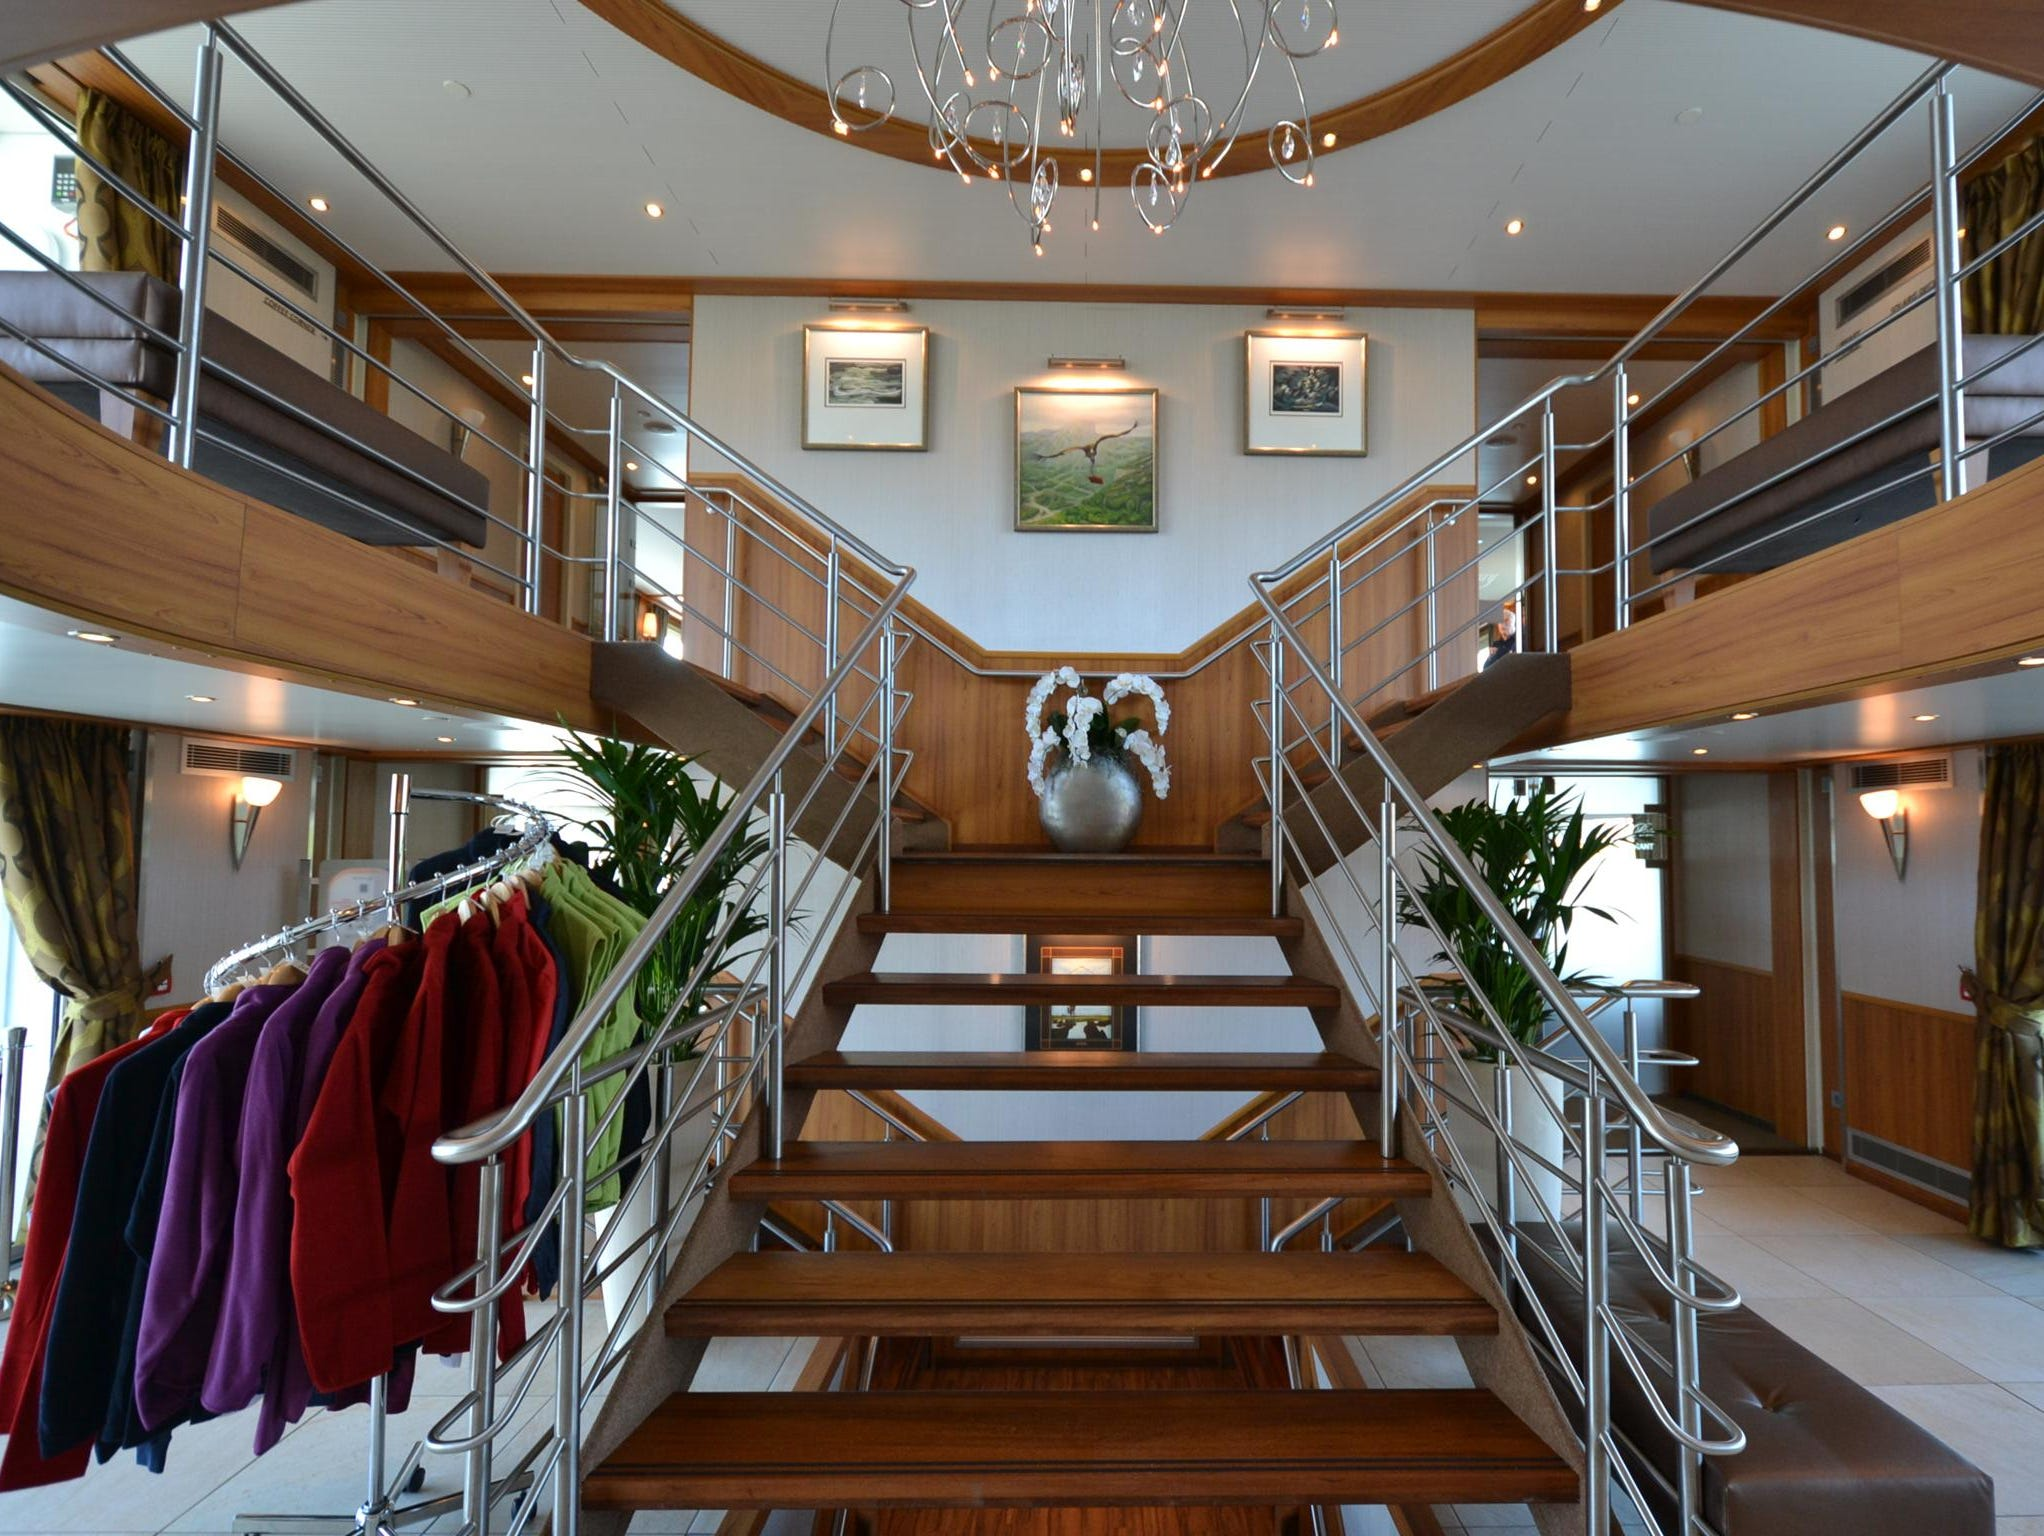 The lobby of the River Discovery II contains a central stairway connecting the vessel's three passenger decks.